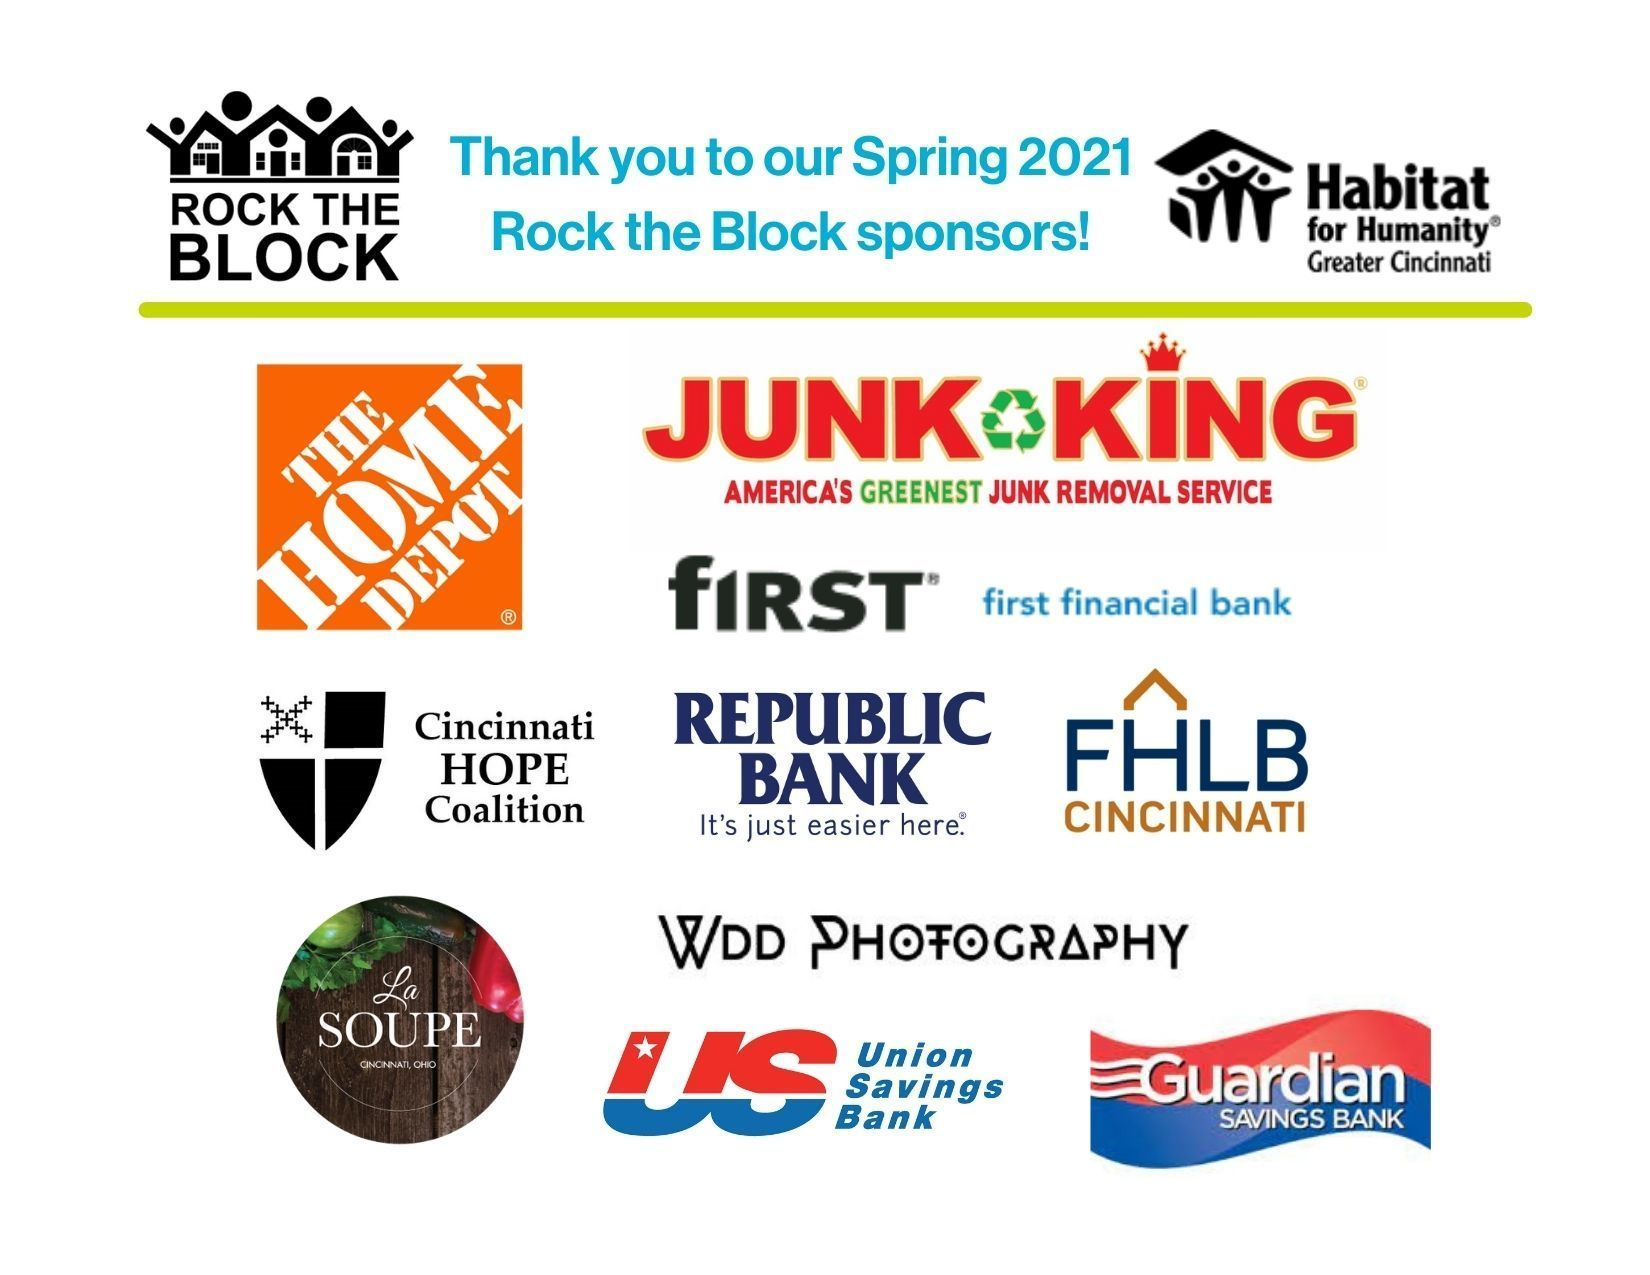 Our Spring 2021 Sponsors